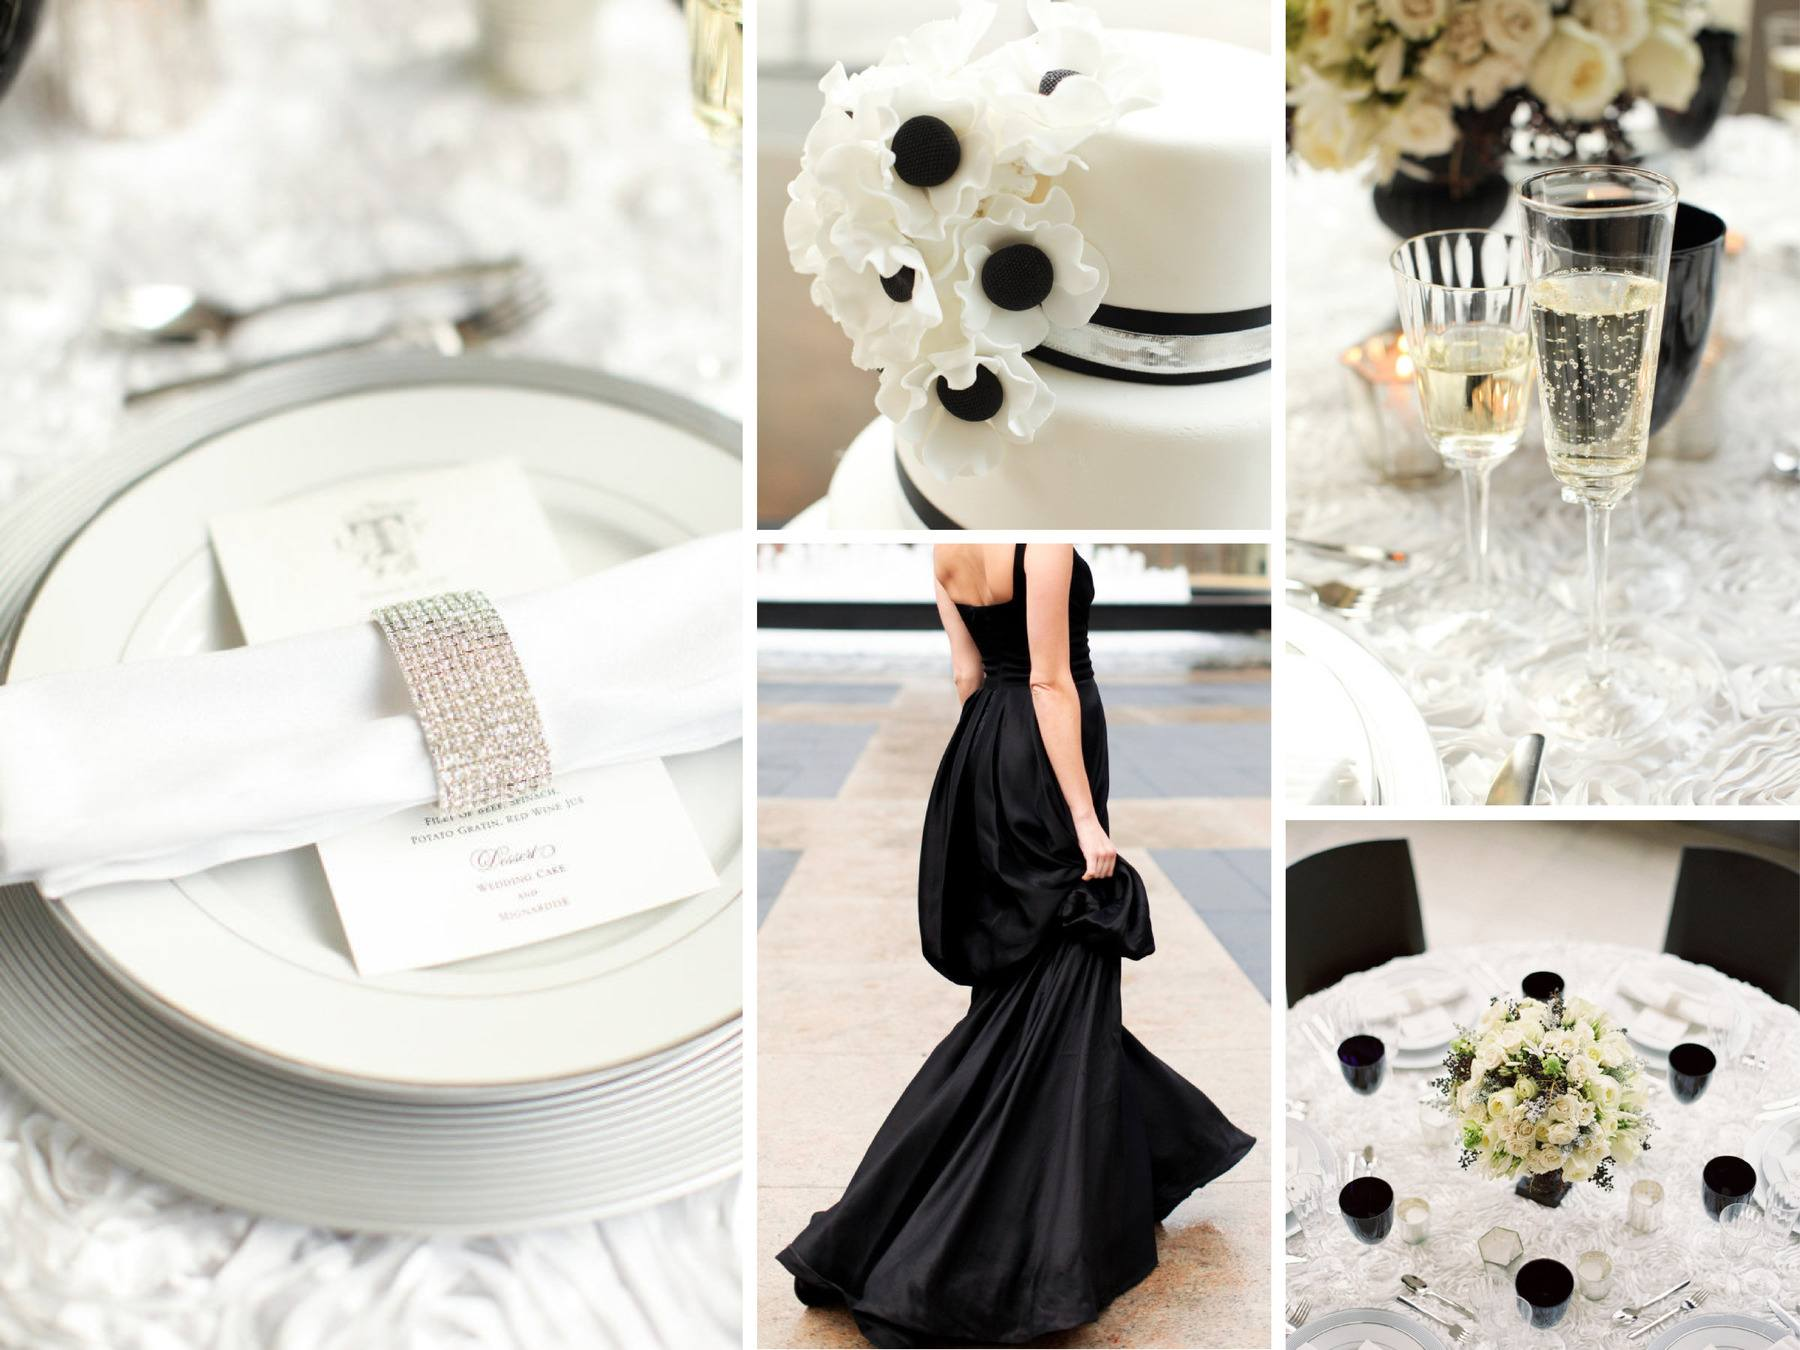 Black white winter wedding at lincoln center n age designs - Adorable iconic furniture design adapts black and white color ...